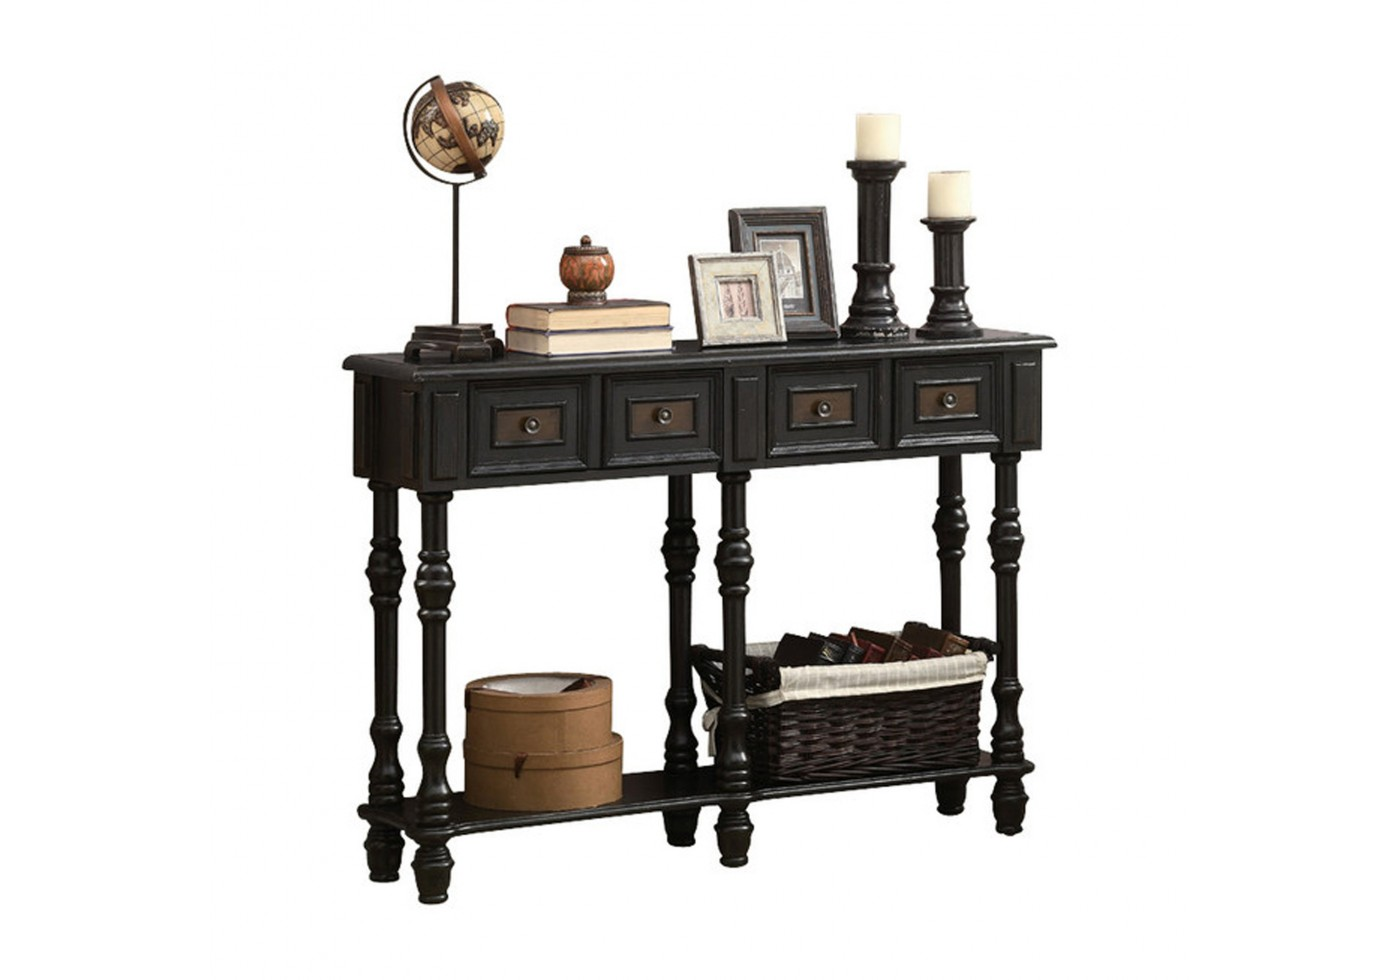 accent table antique black traditional style small round wooden sofa for space living room nate berkus marble battery operated bedside lights counter height dining set with